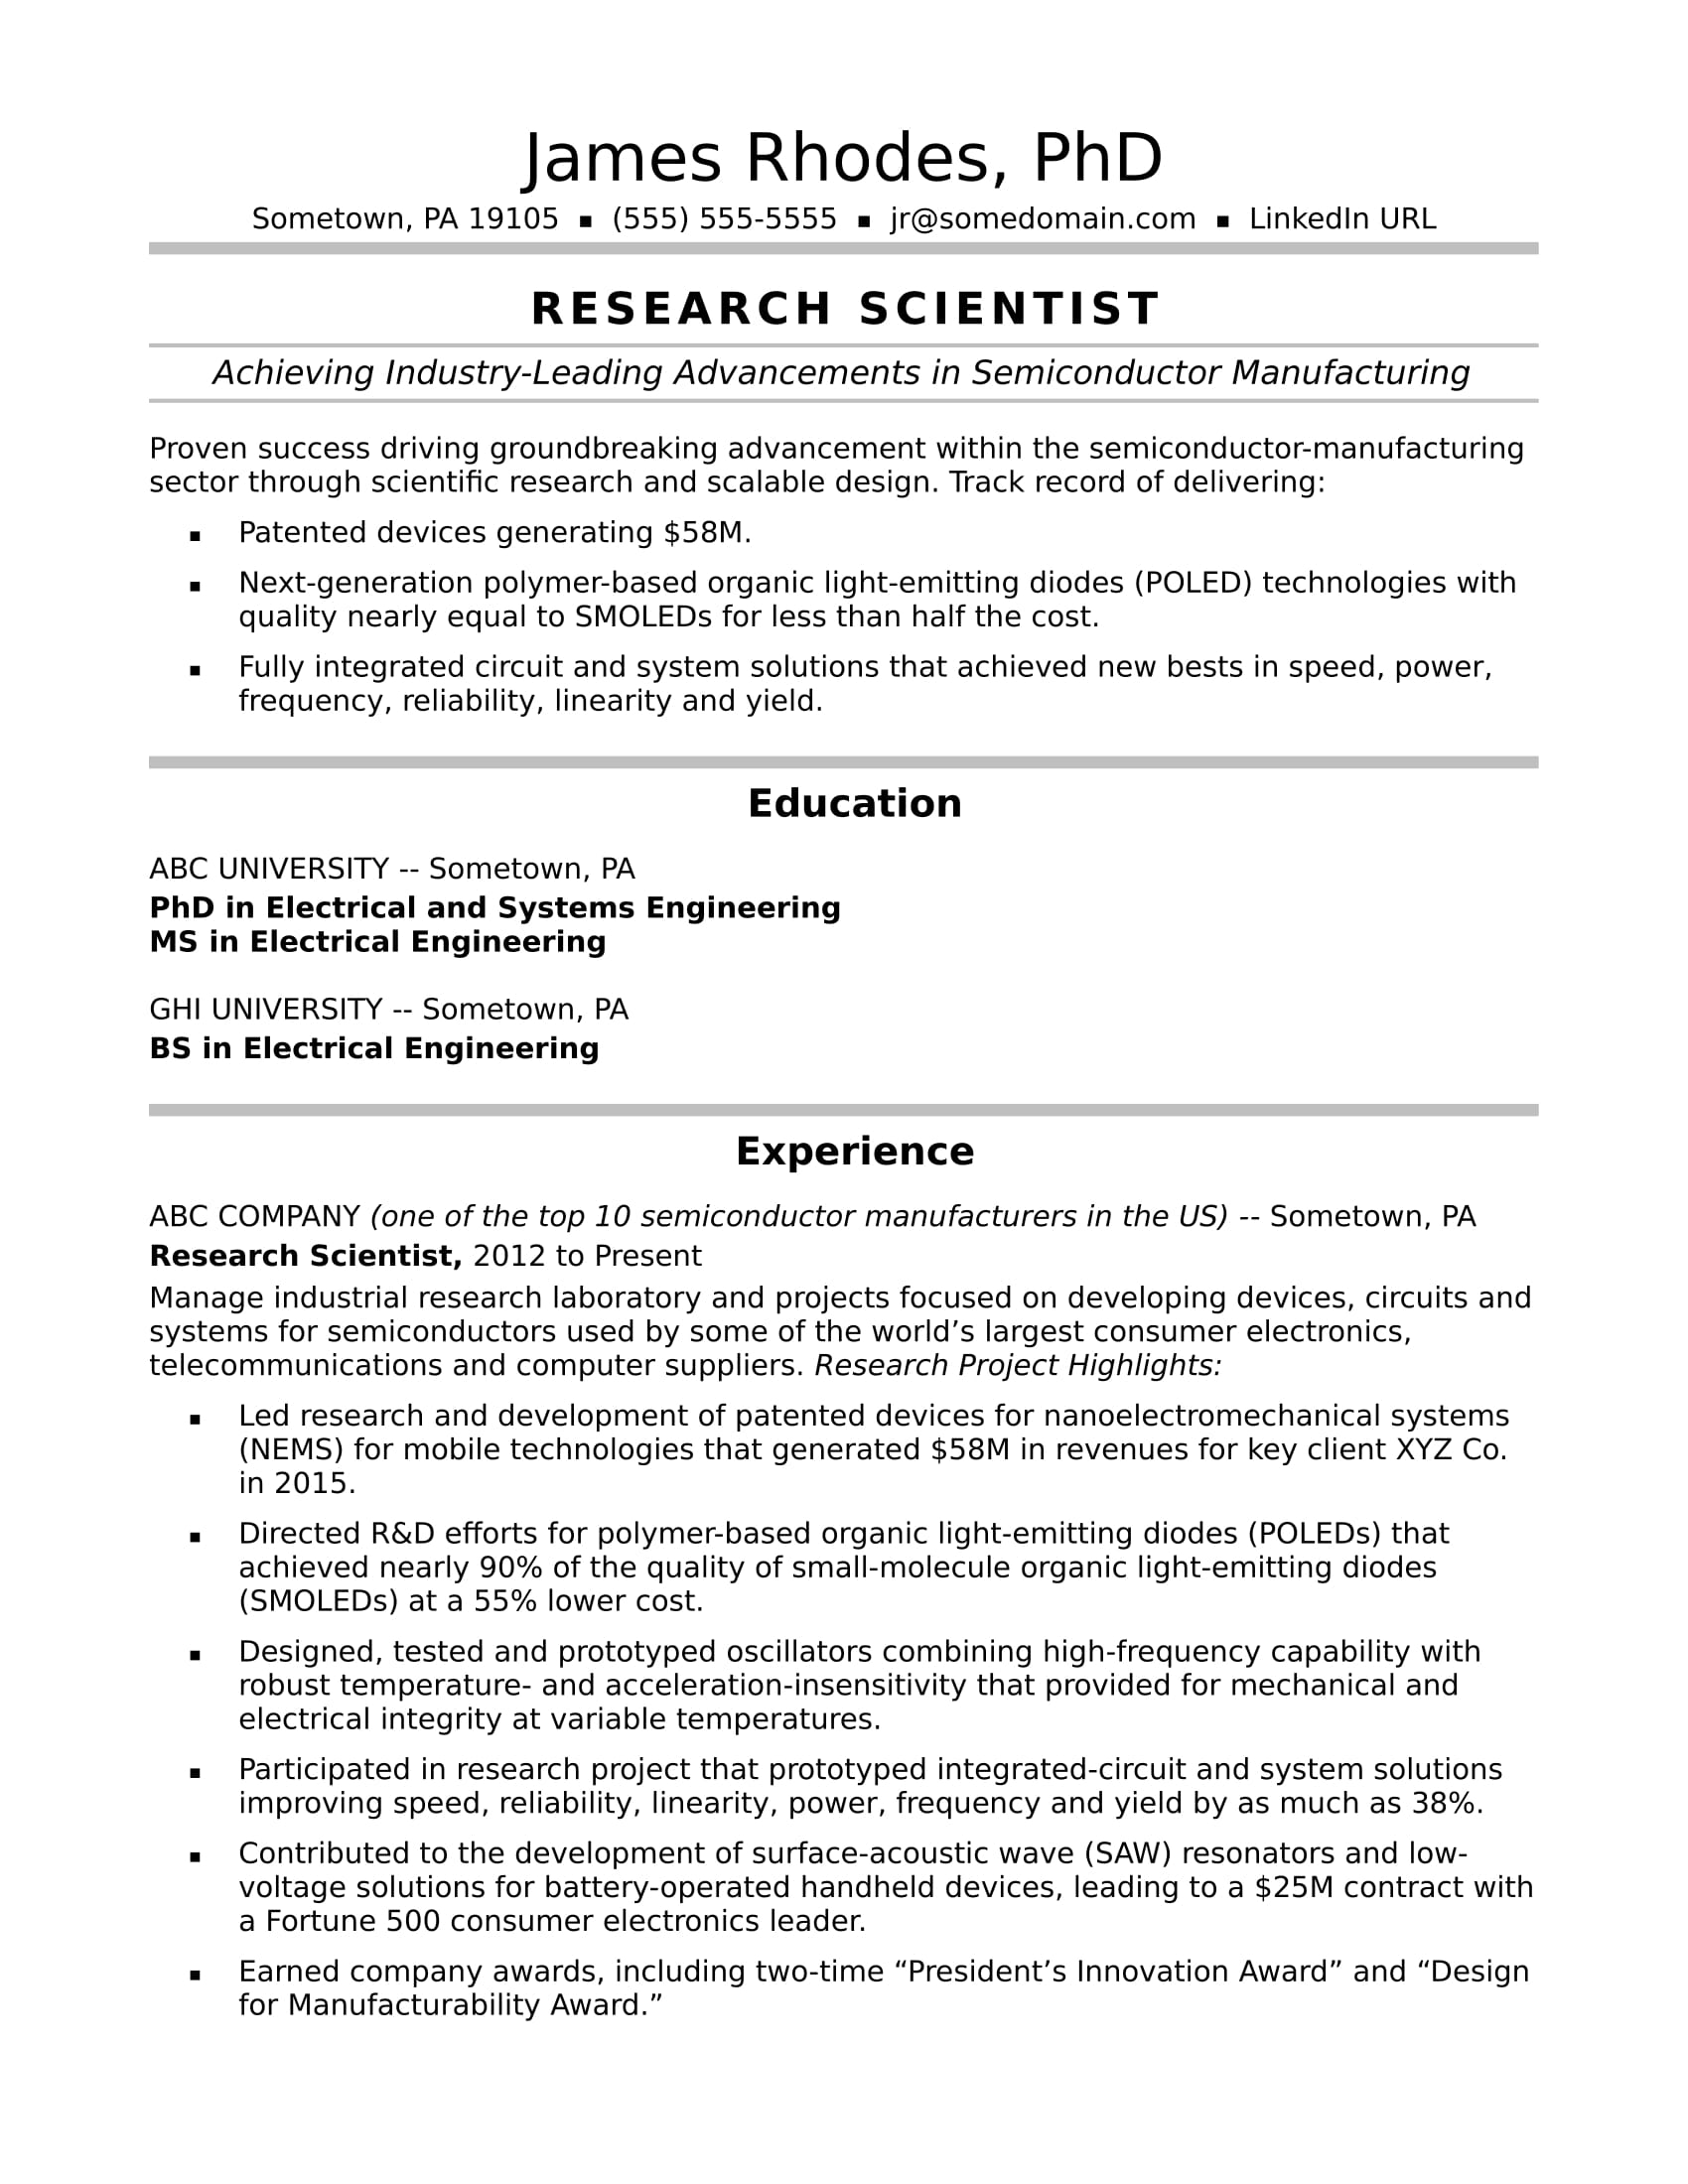 Research Scientist Resume Sample Monstercom